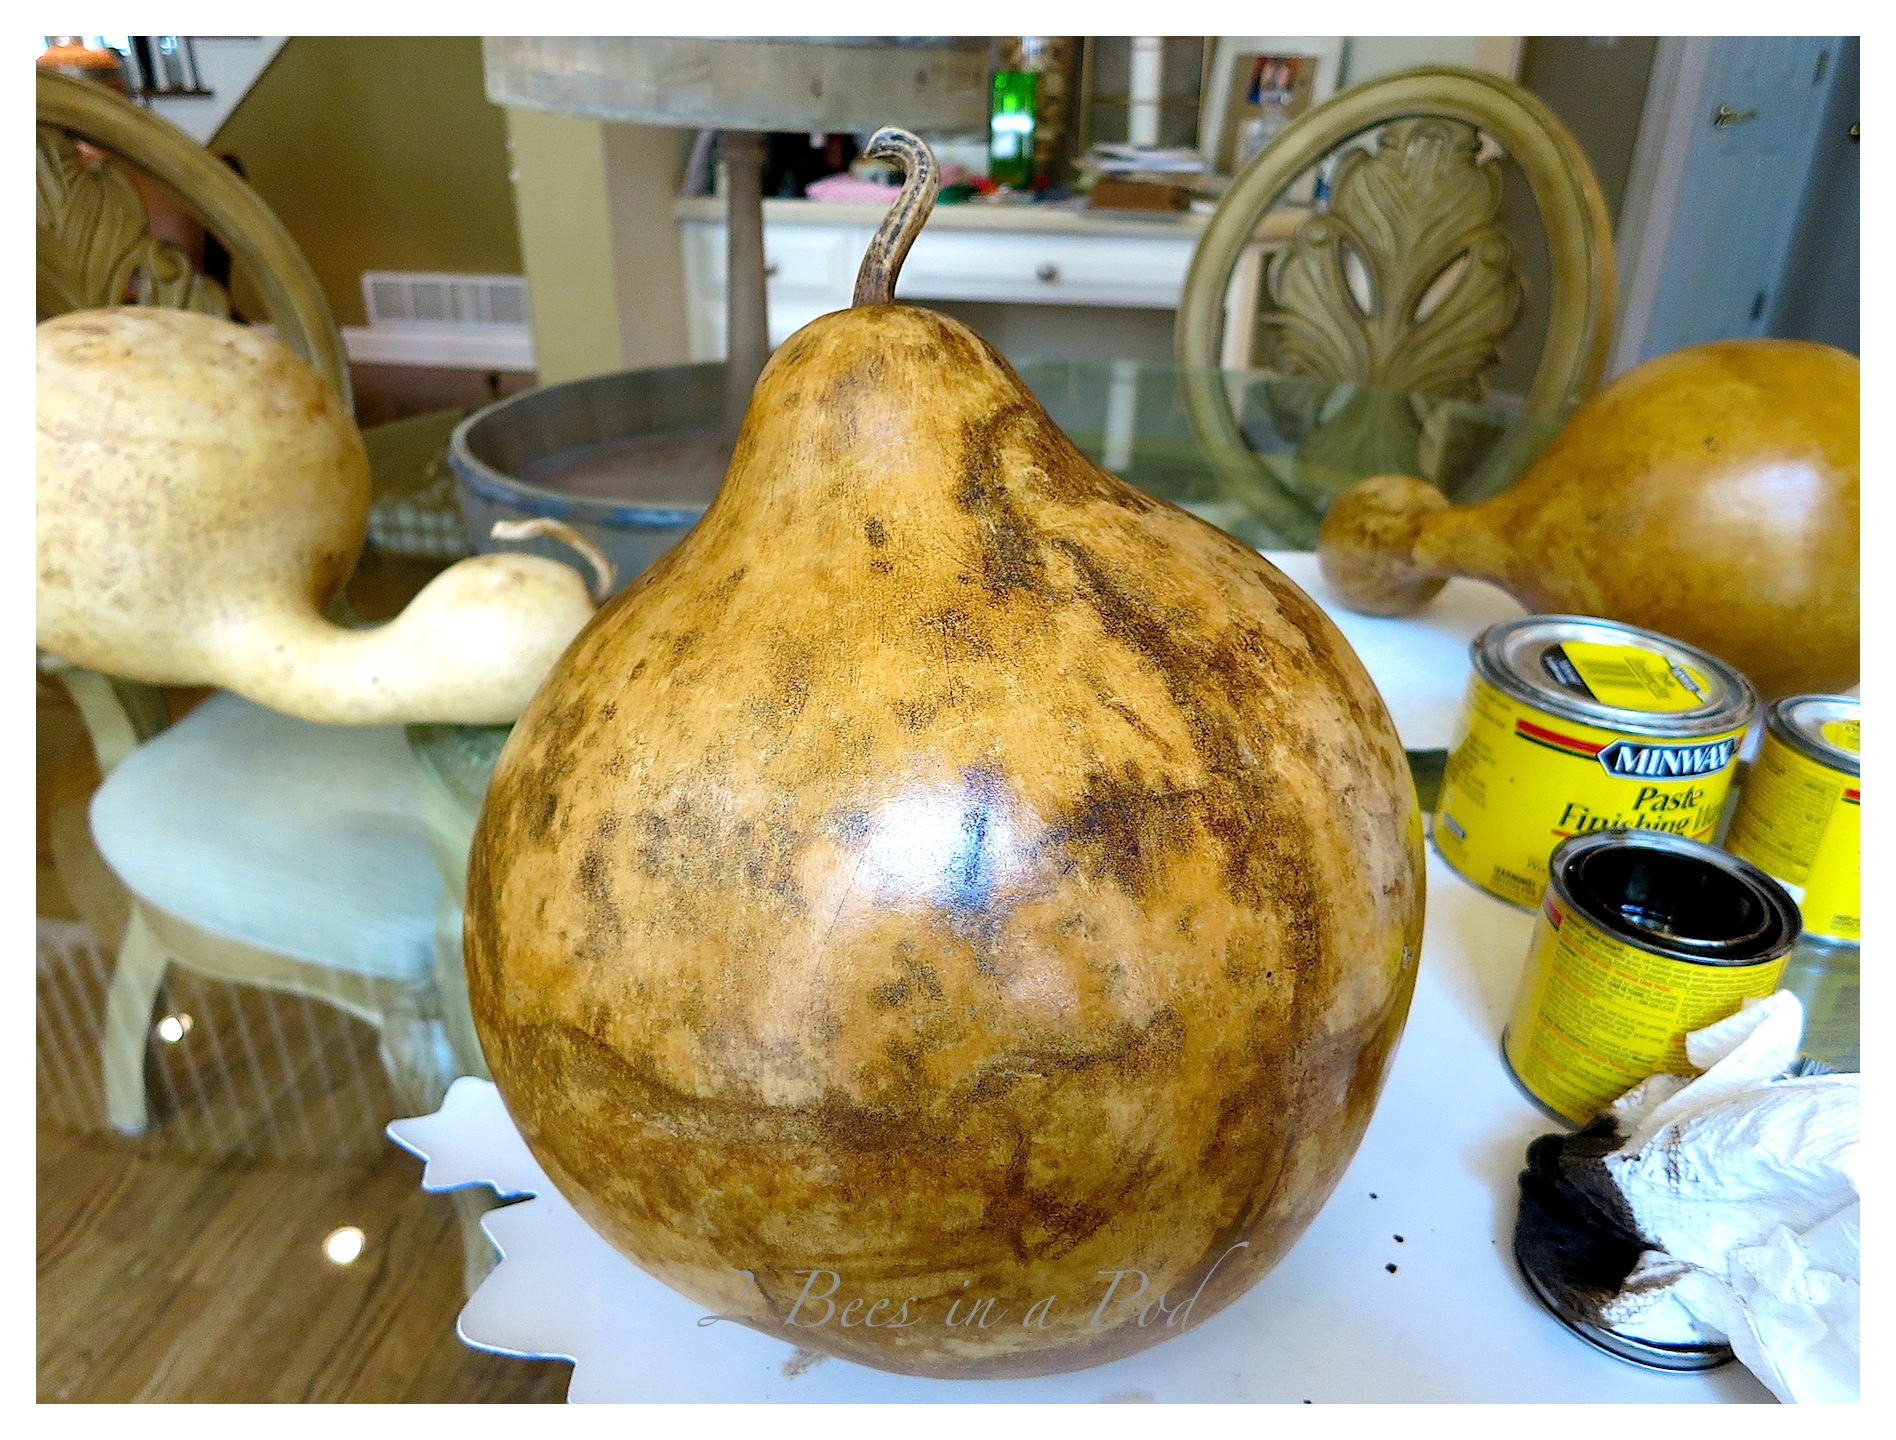 Apply paste wax onto the gourd to protect the coat and give it more shine. The stain will be dry in about an hour.